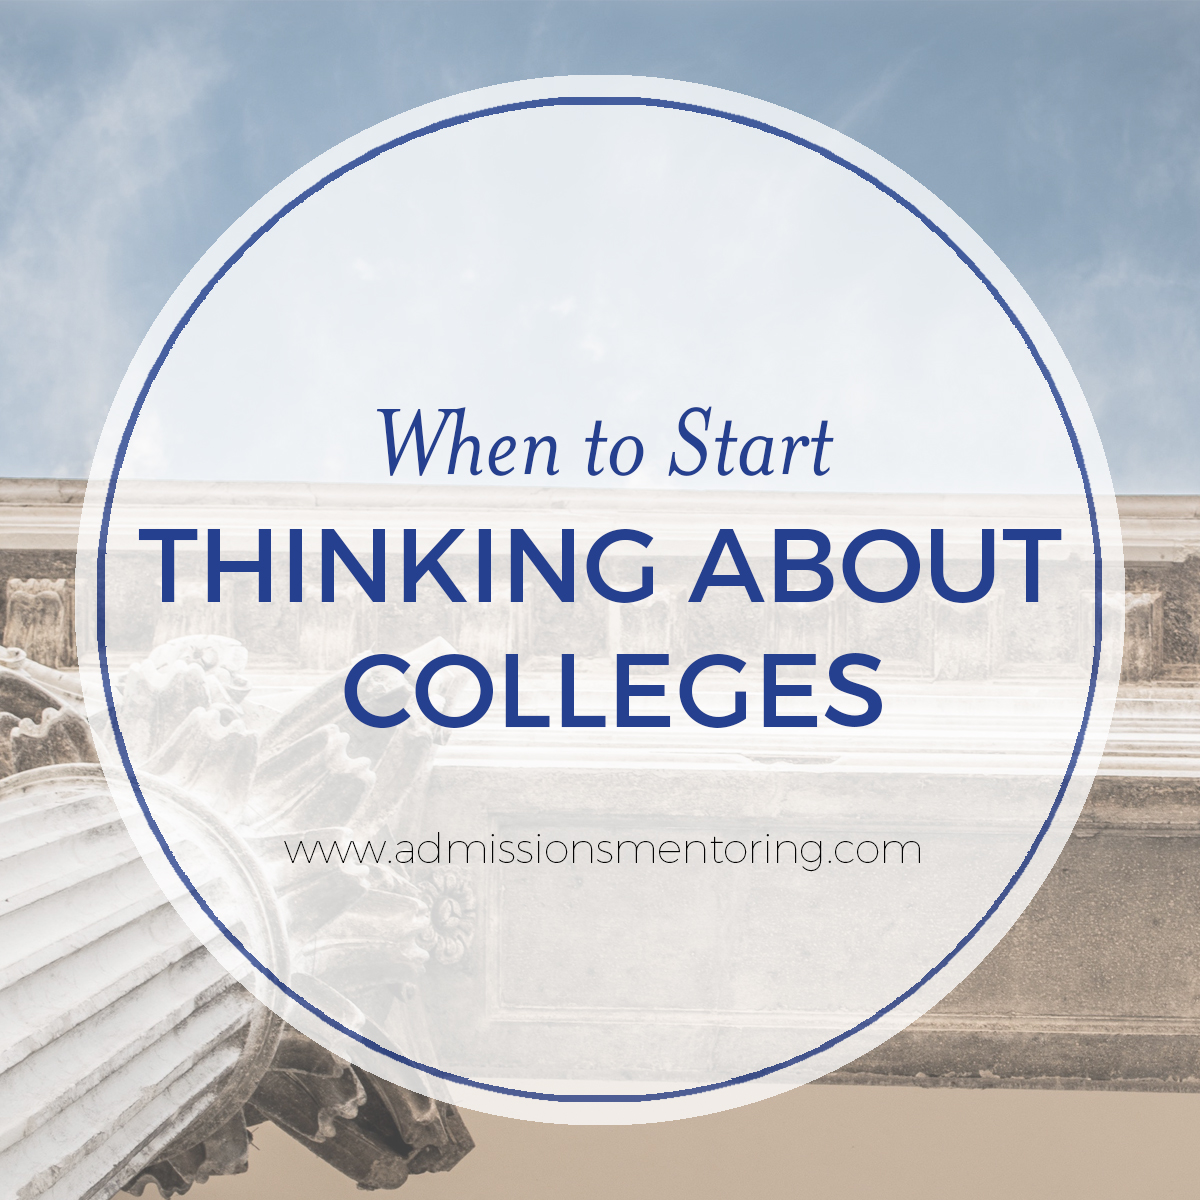 Admissions-Mentoring-How-To-Research-Colleges copy.jpg